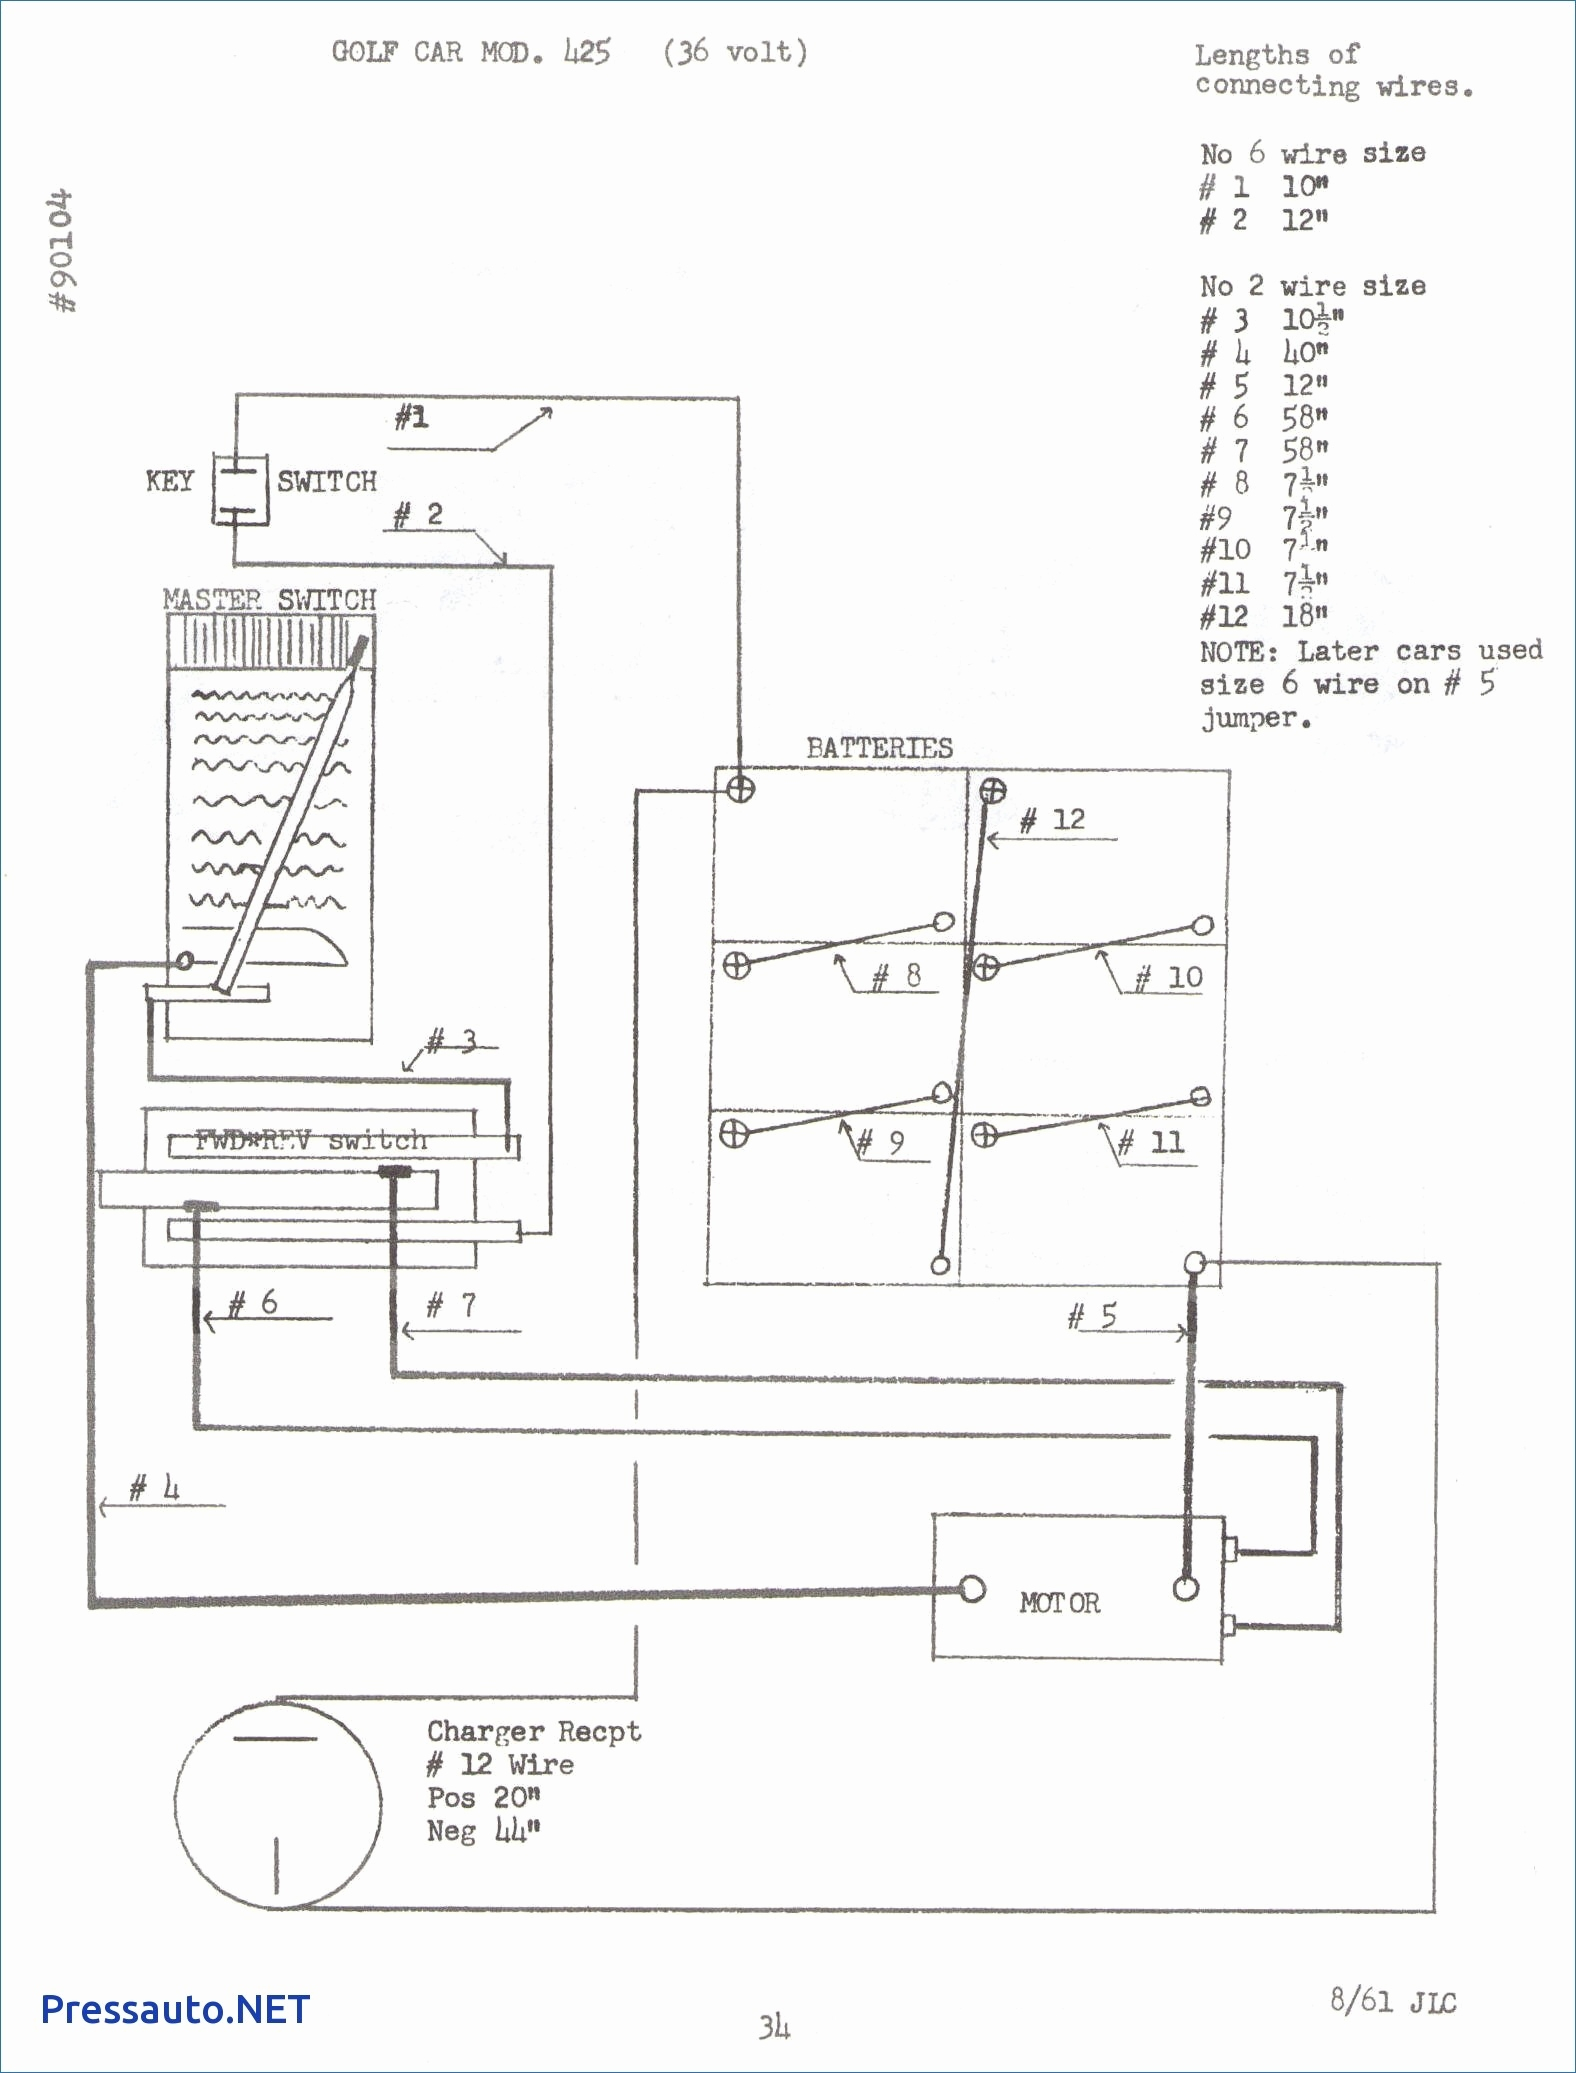 36v battery wiring diagram four wire oxygen sensor 36 volt to 12 library